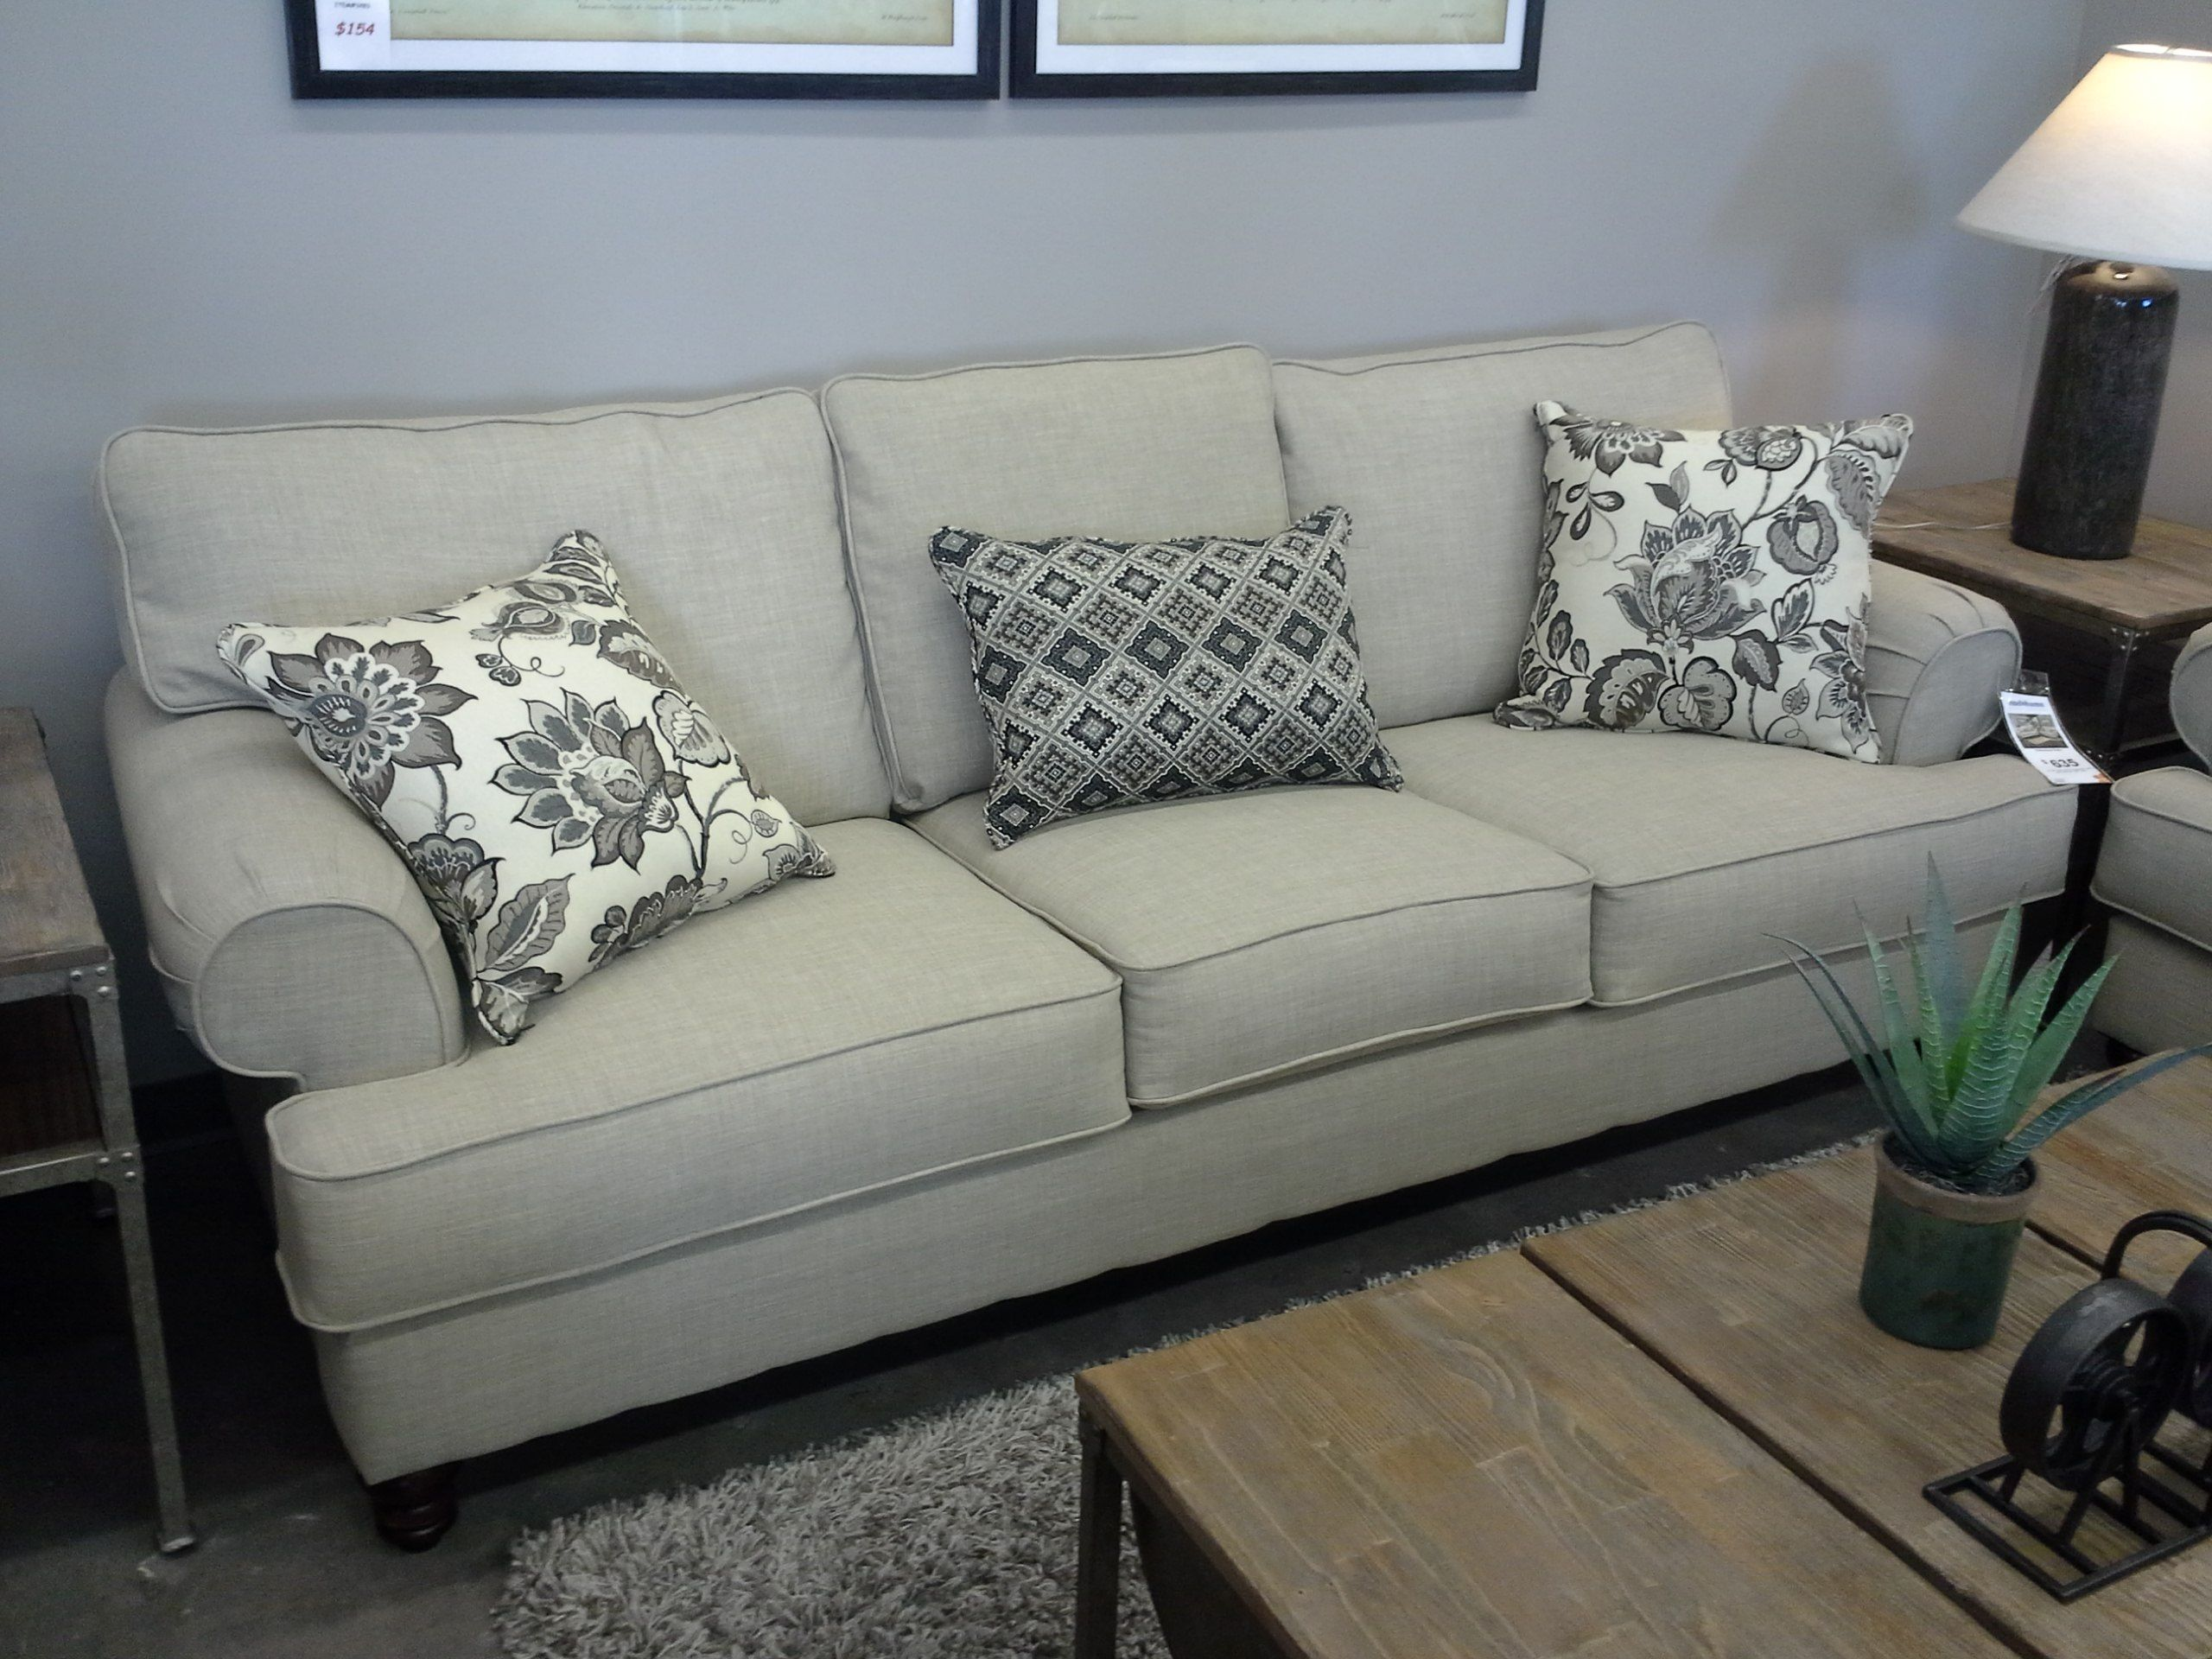 southland couch and loveseat  mod home furniture in tempe. southland couch and loveseat  mod home furniture in tempe   PHX